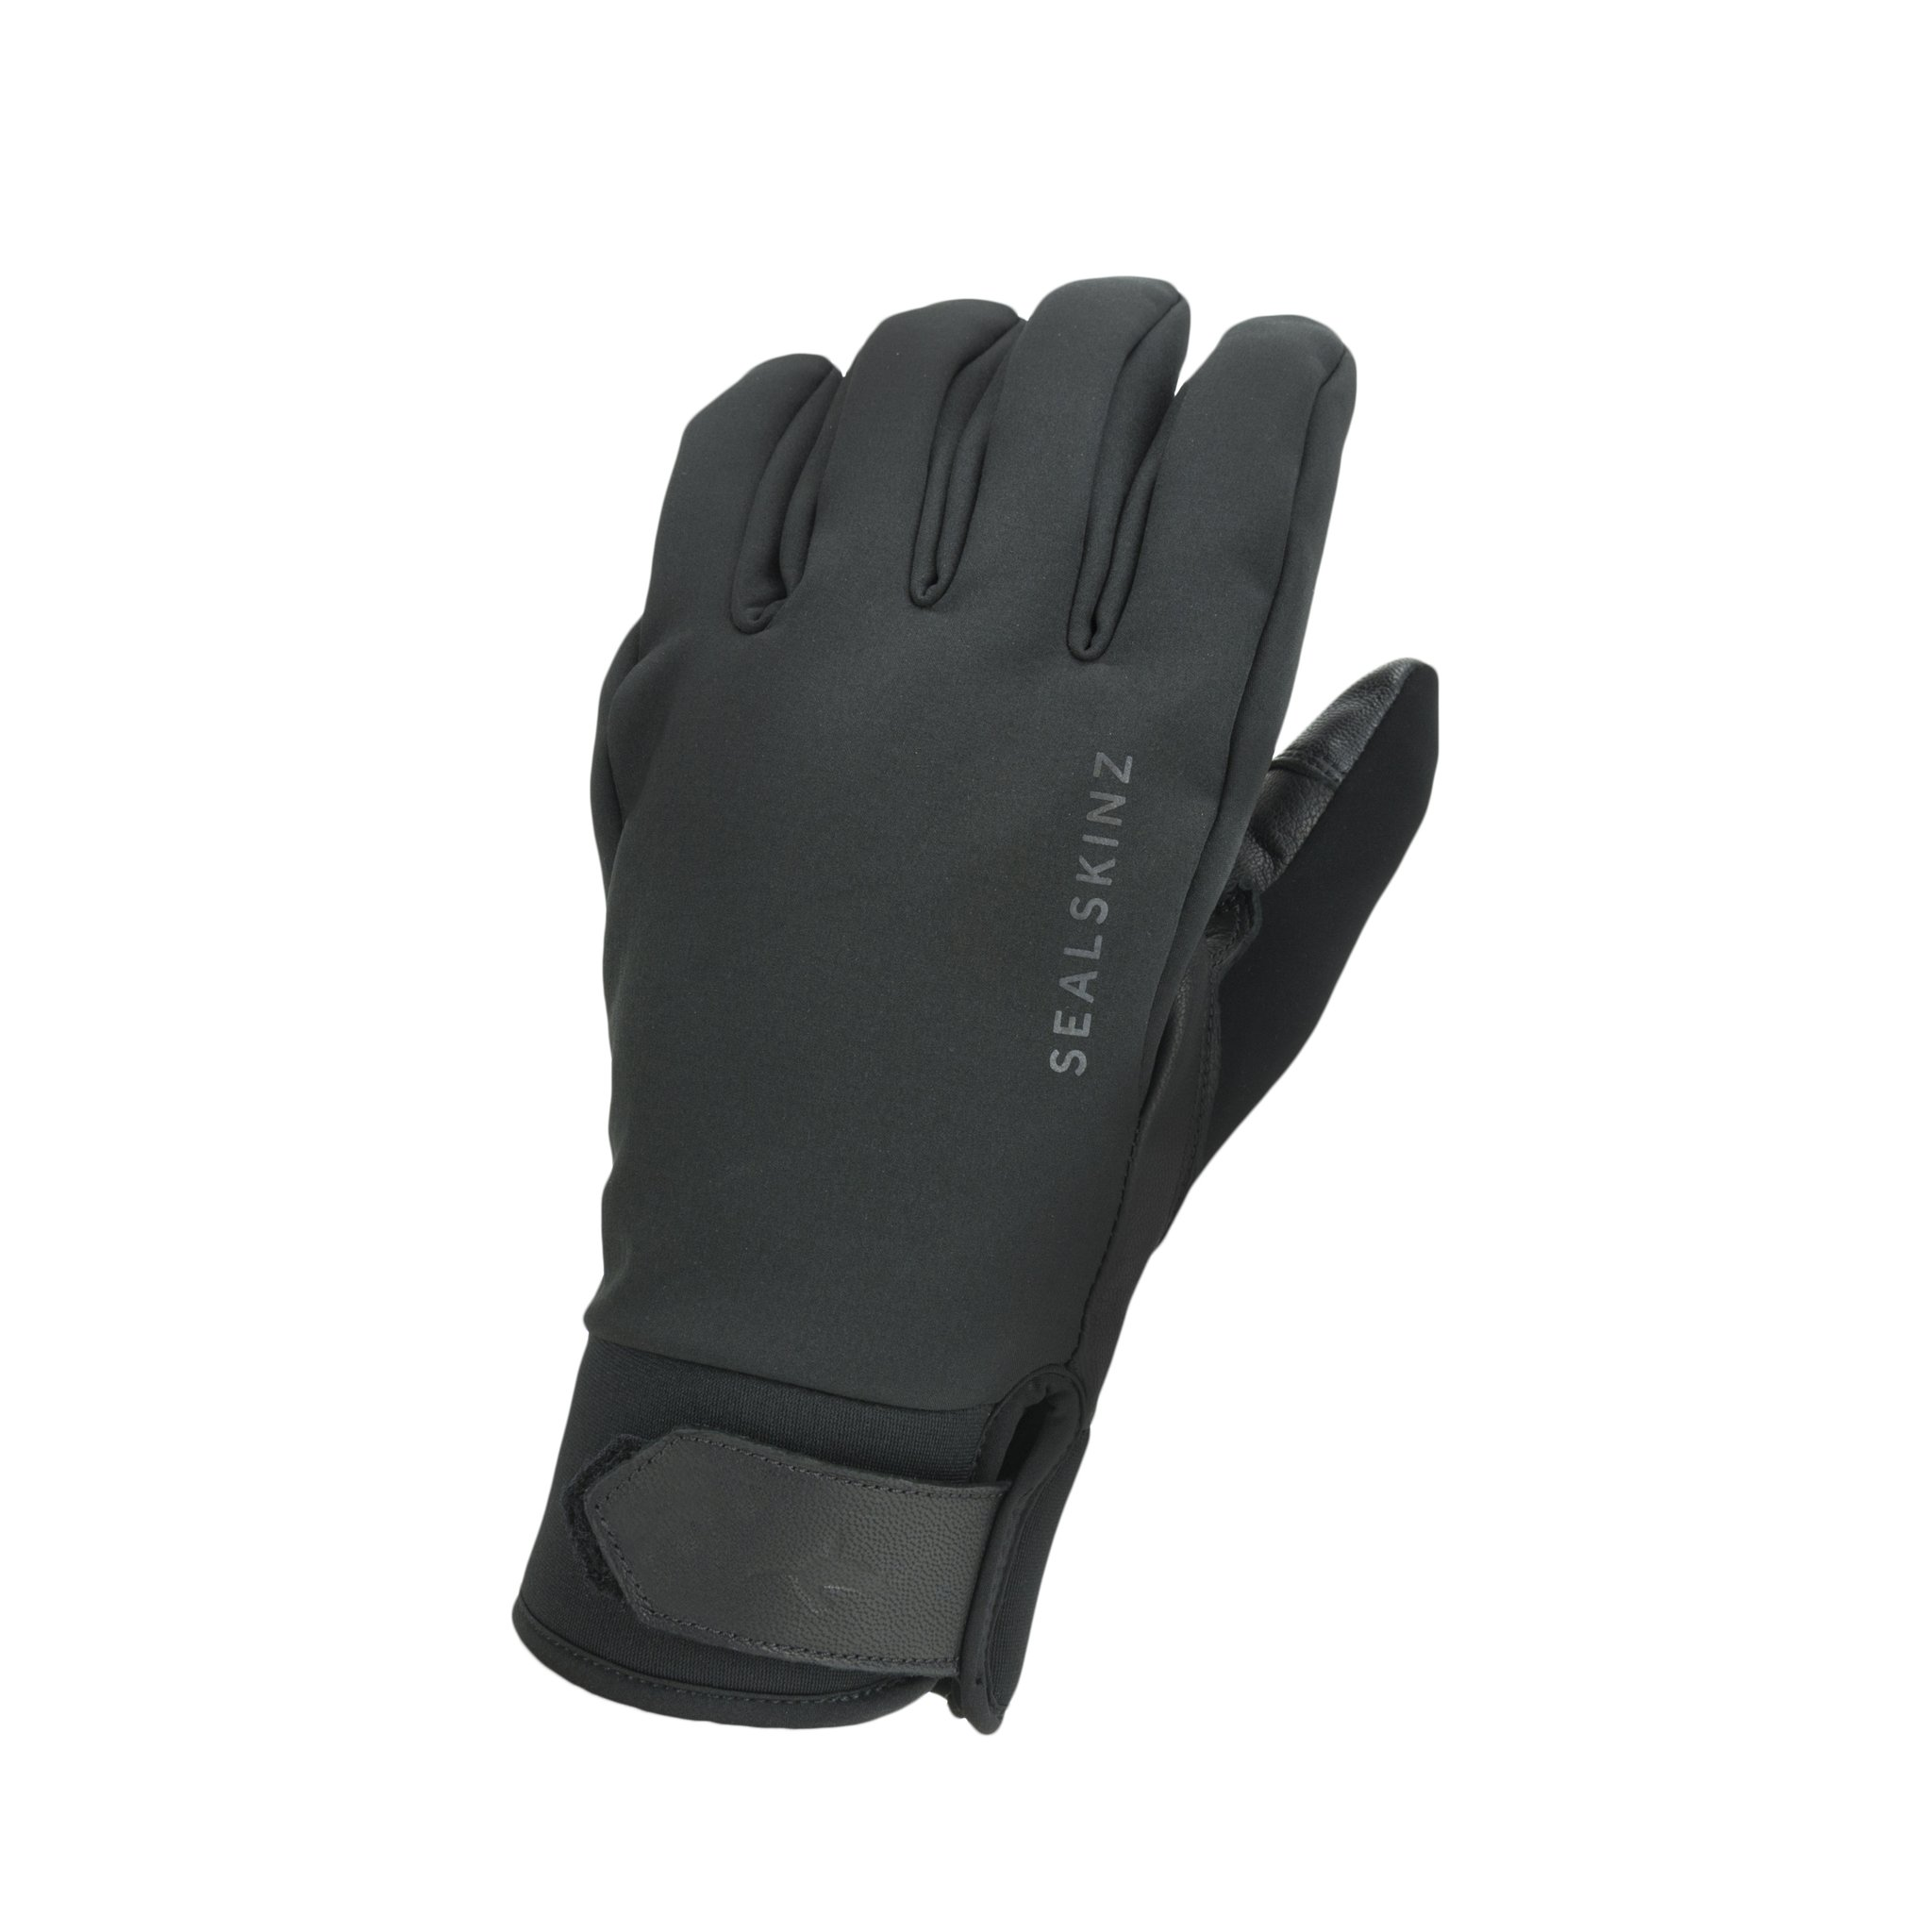 Sealskinz Wp All Weather Insulated Glove Black